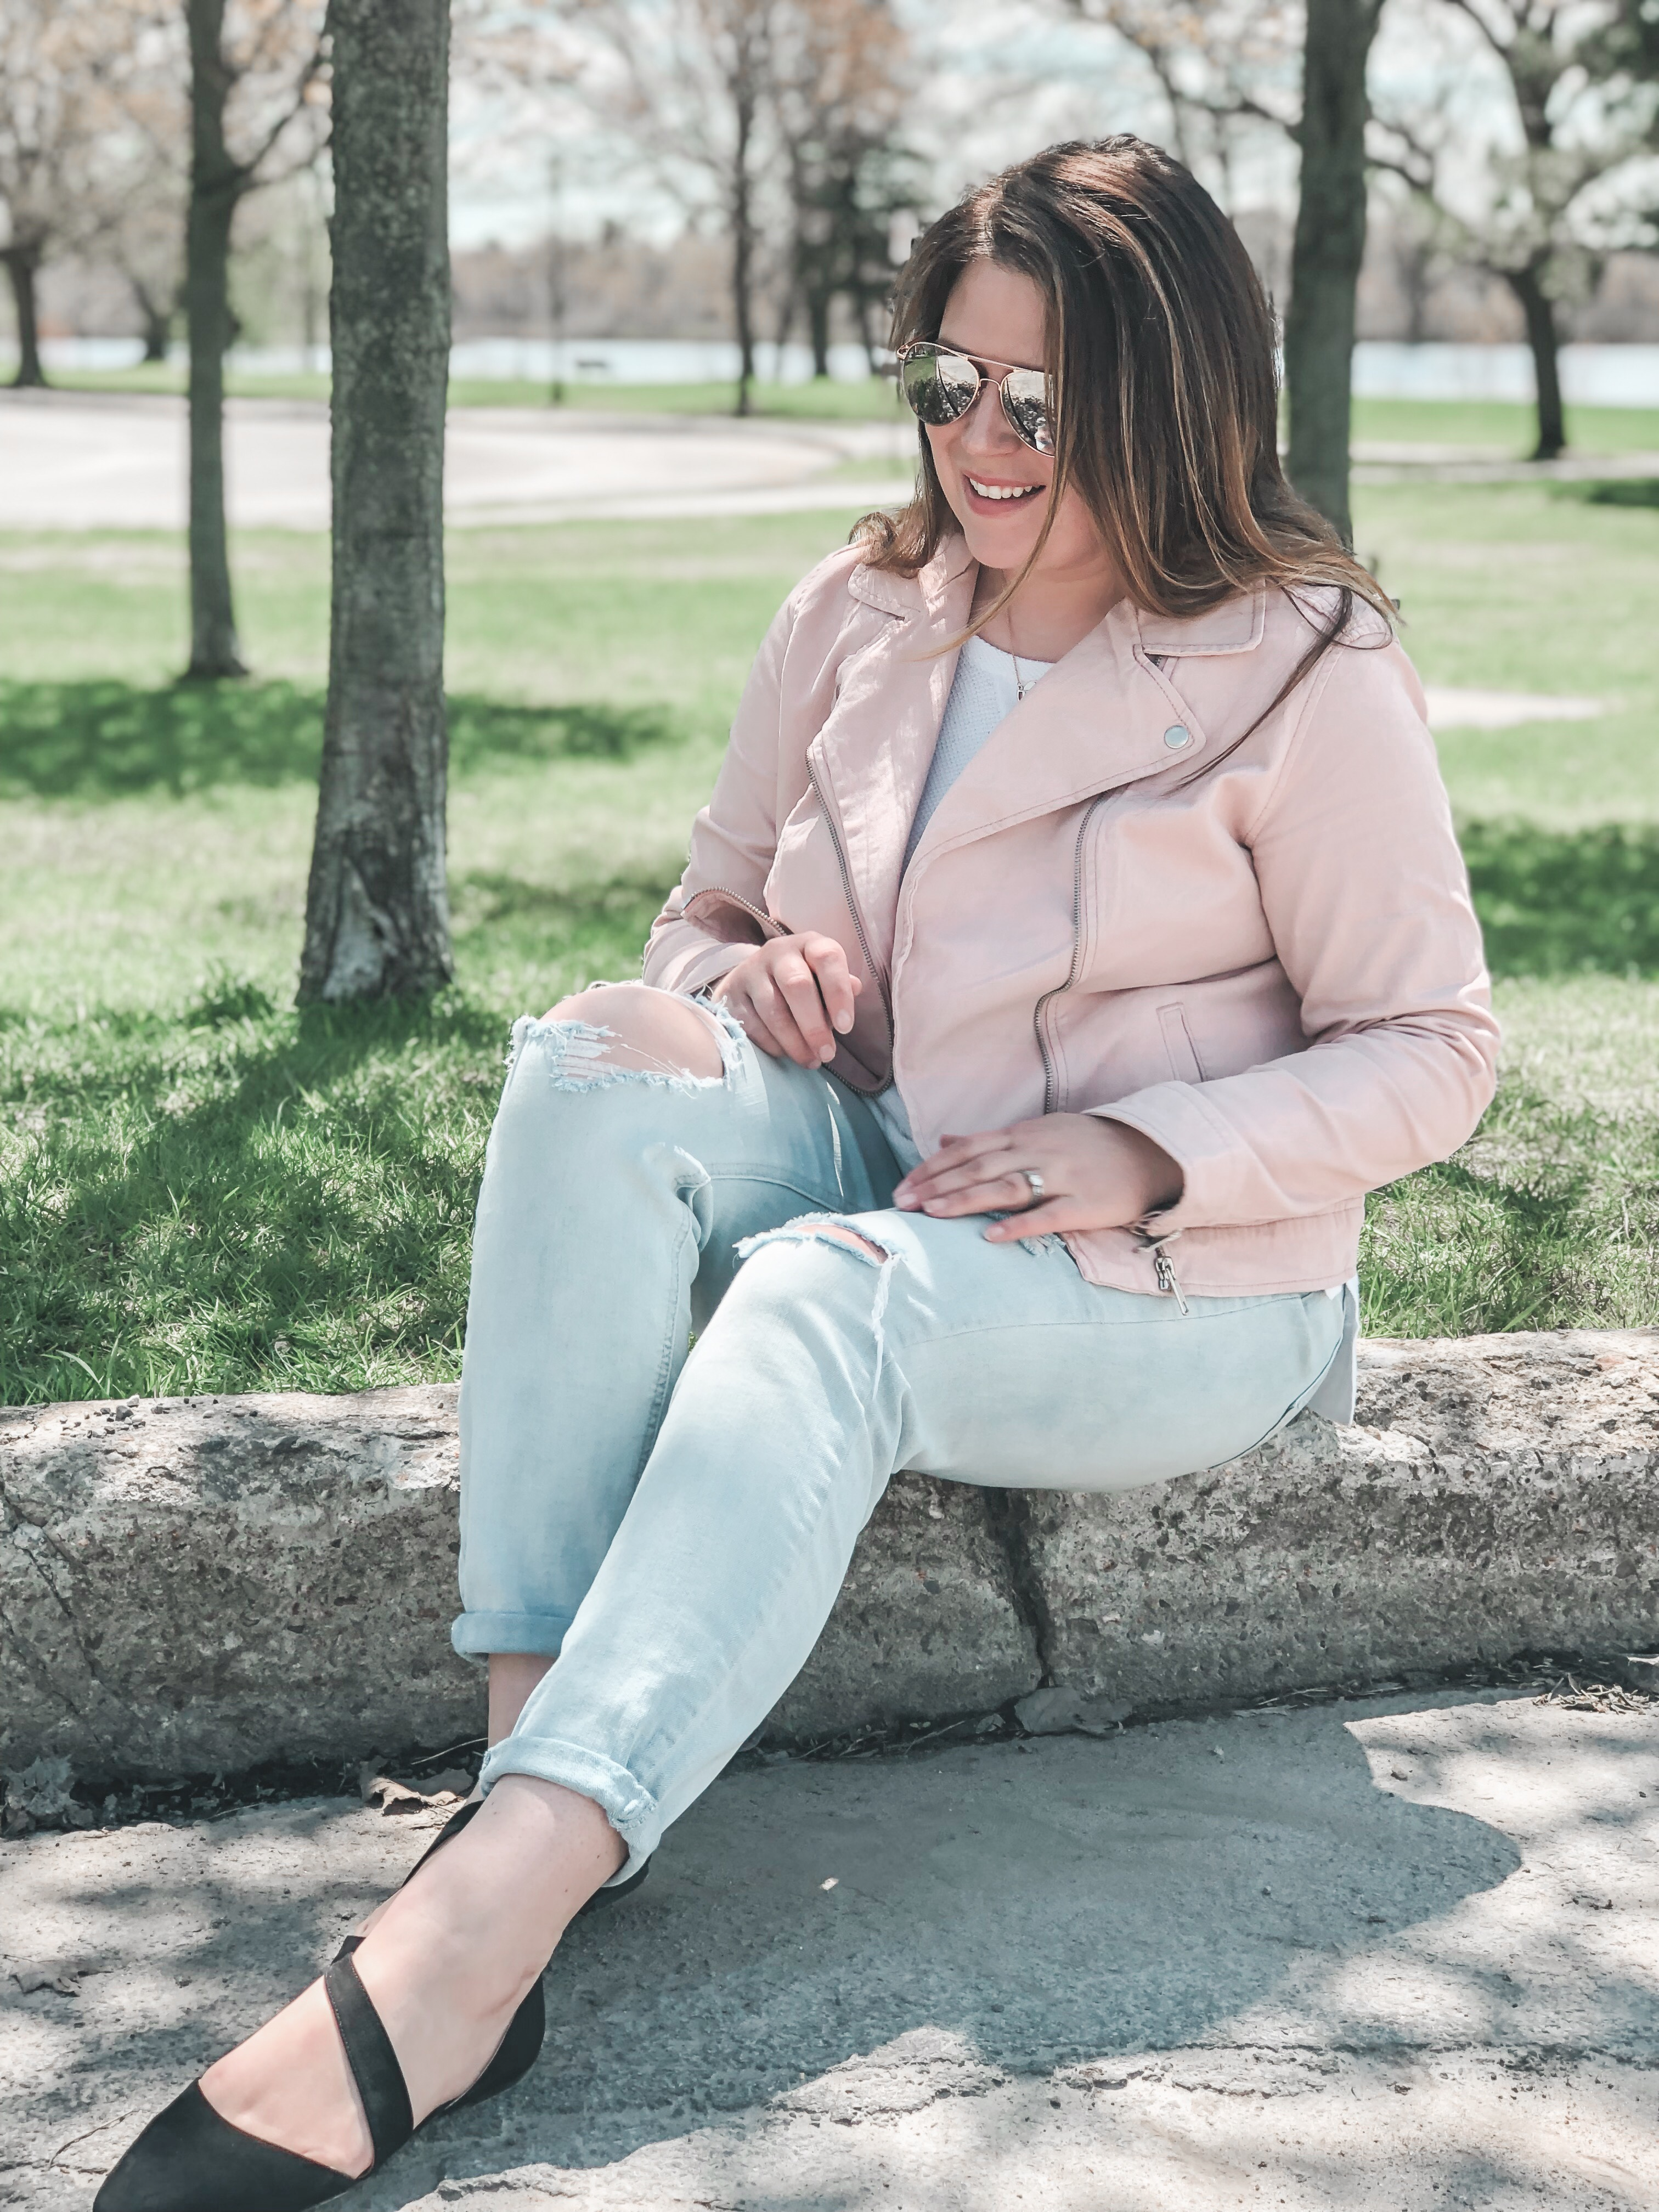 Pink Moto jacket casual outfit with ripped jeans and flats